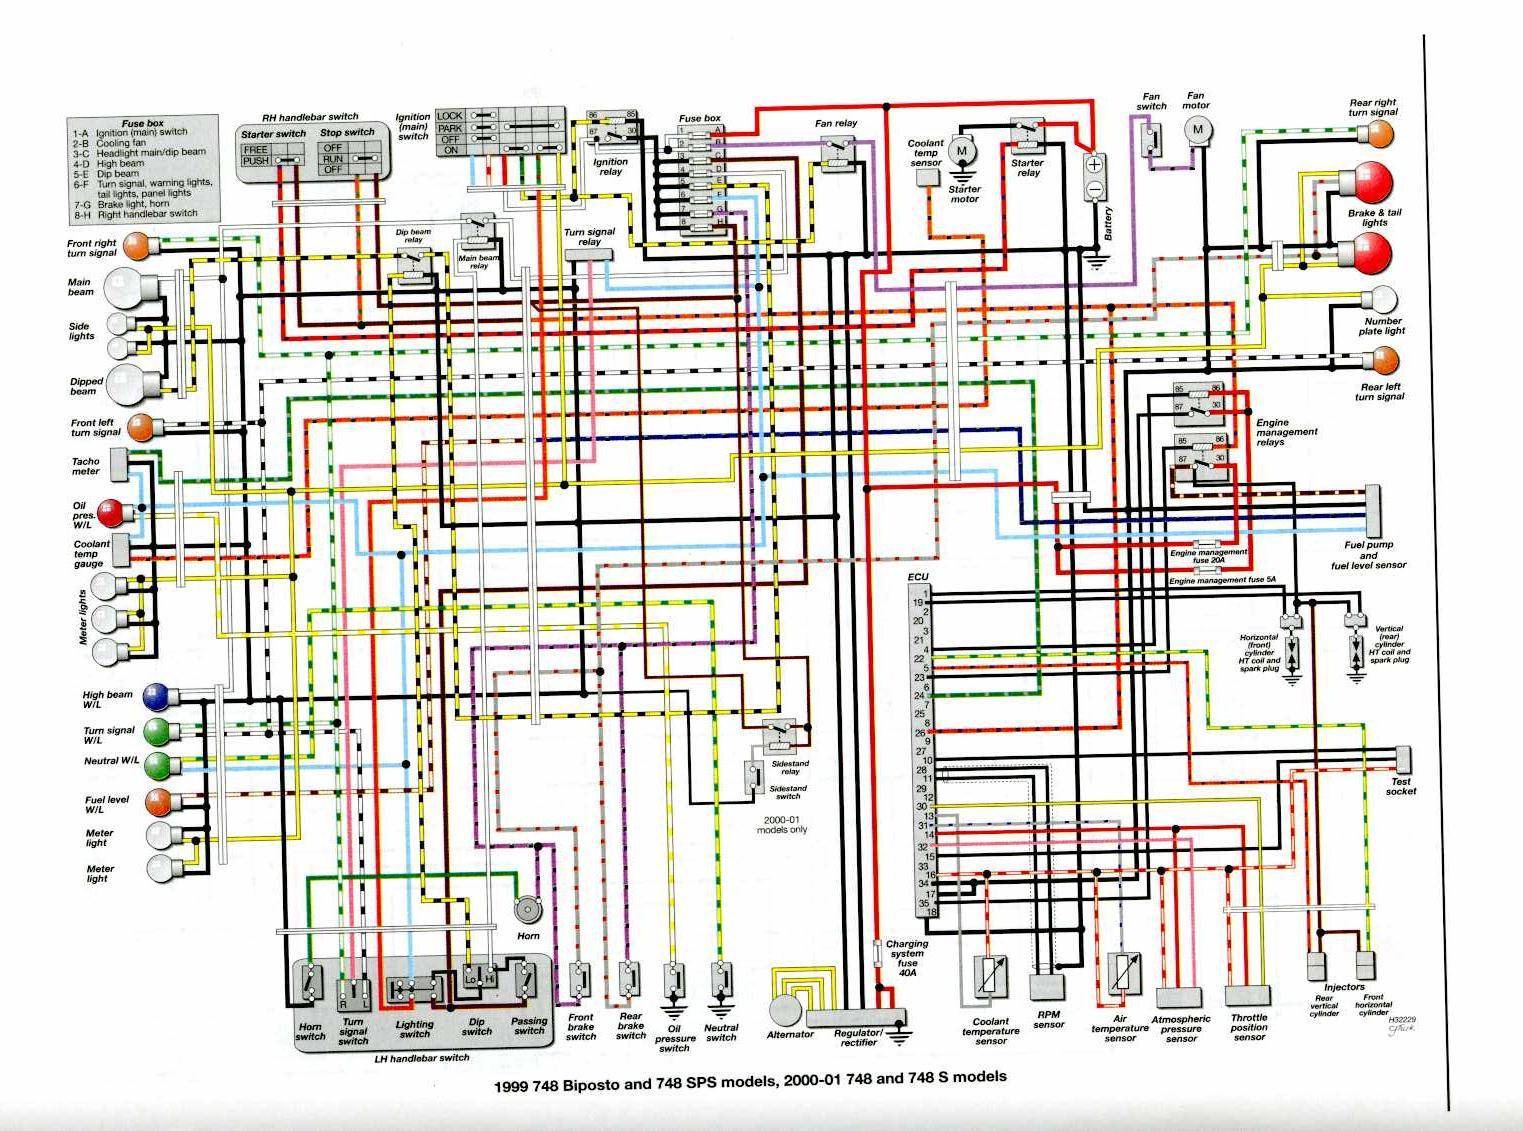 Ducati Wiring Diagrams - 2006 Cadillac Sts Sunroof Wiring Diagram for Wiring  Diagram SchematicsWiring Diagram Schematics